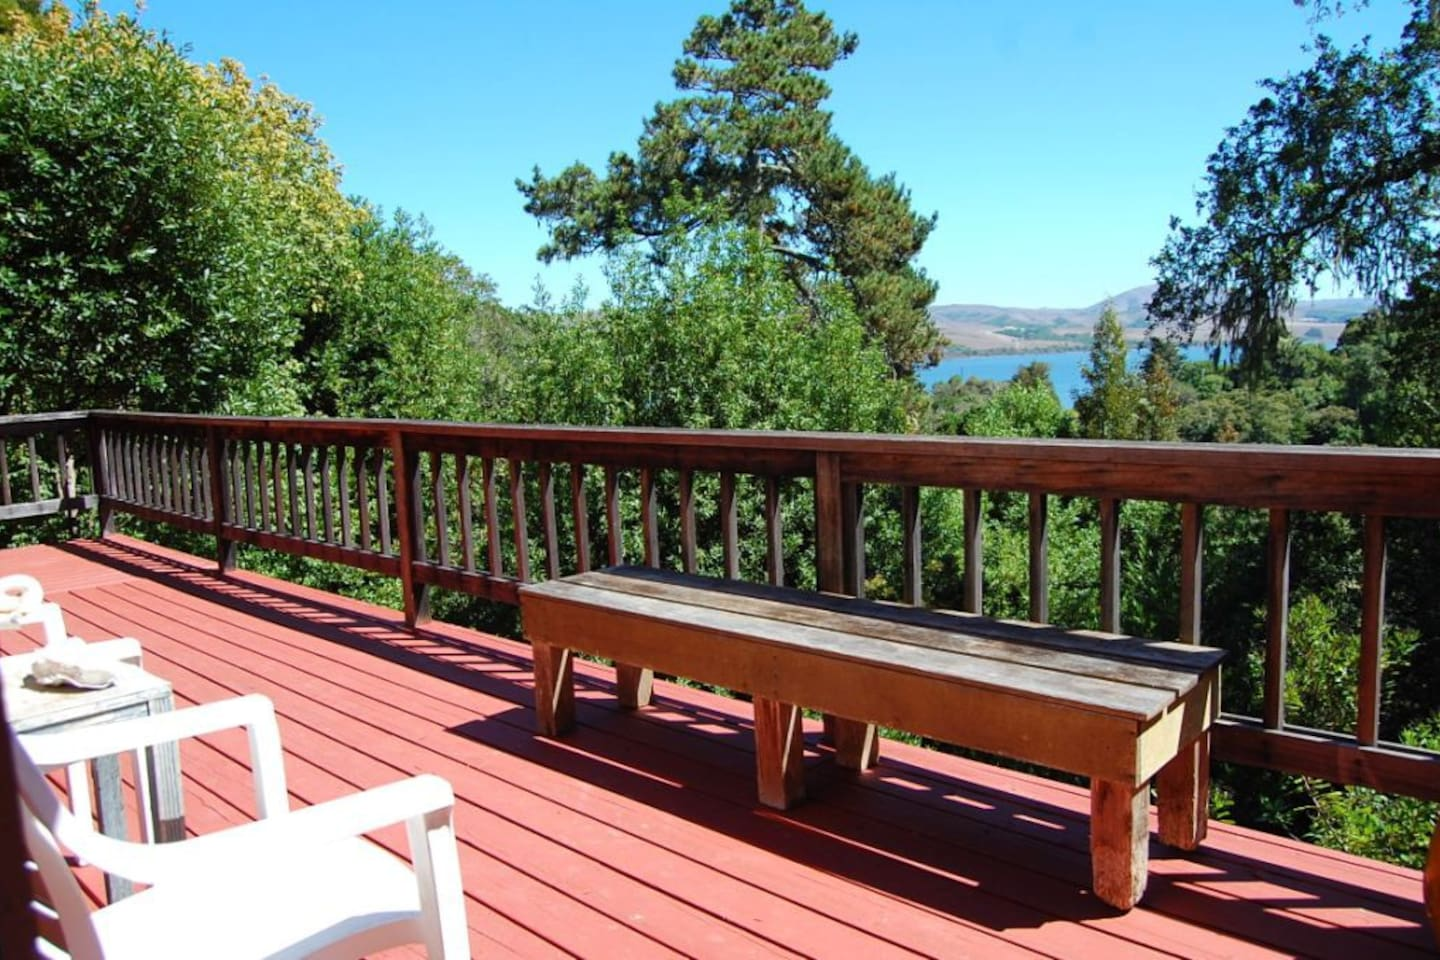 The sunny deck overlooks Tomales Bay